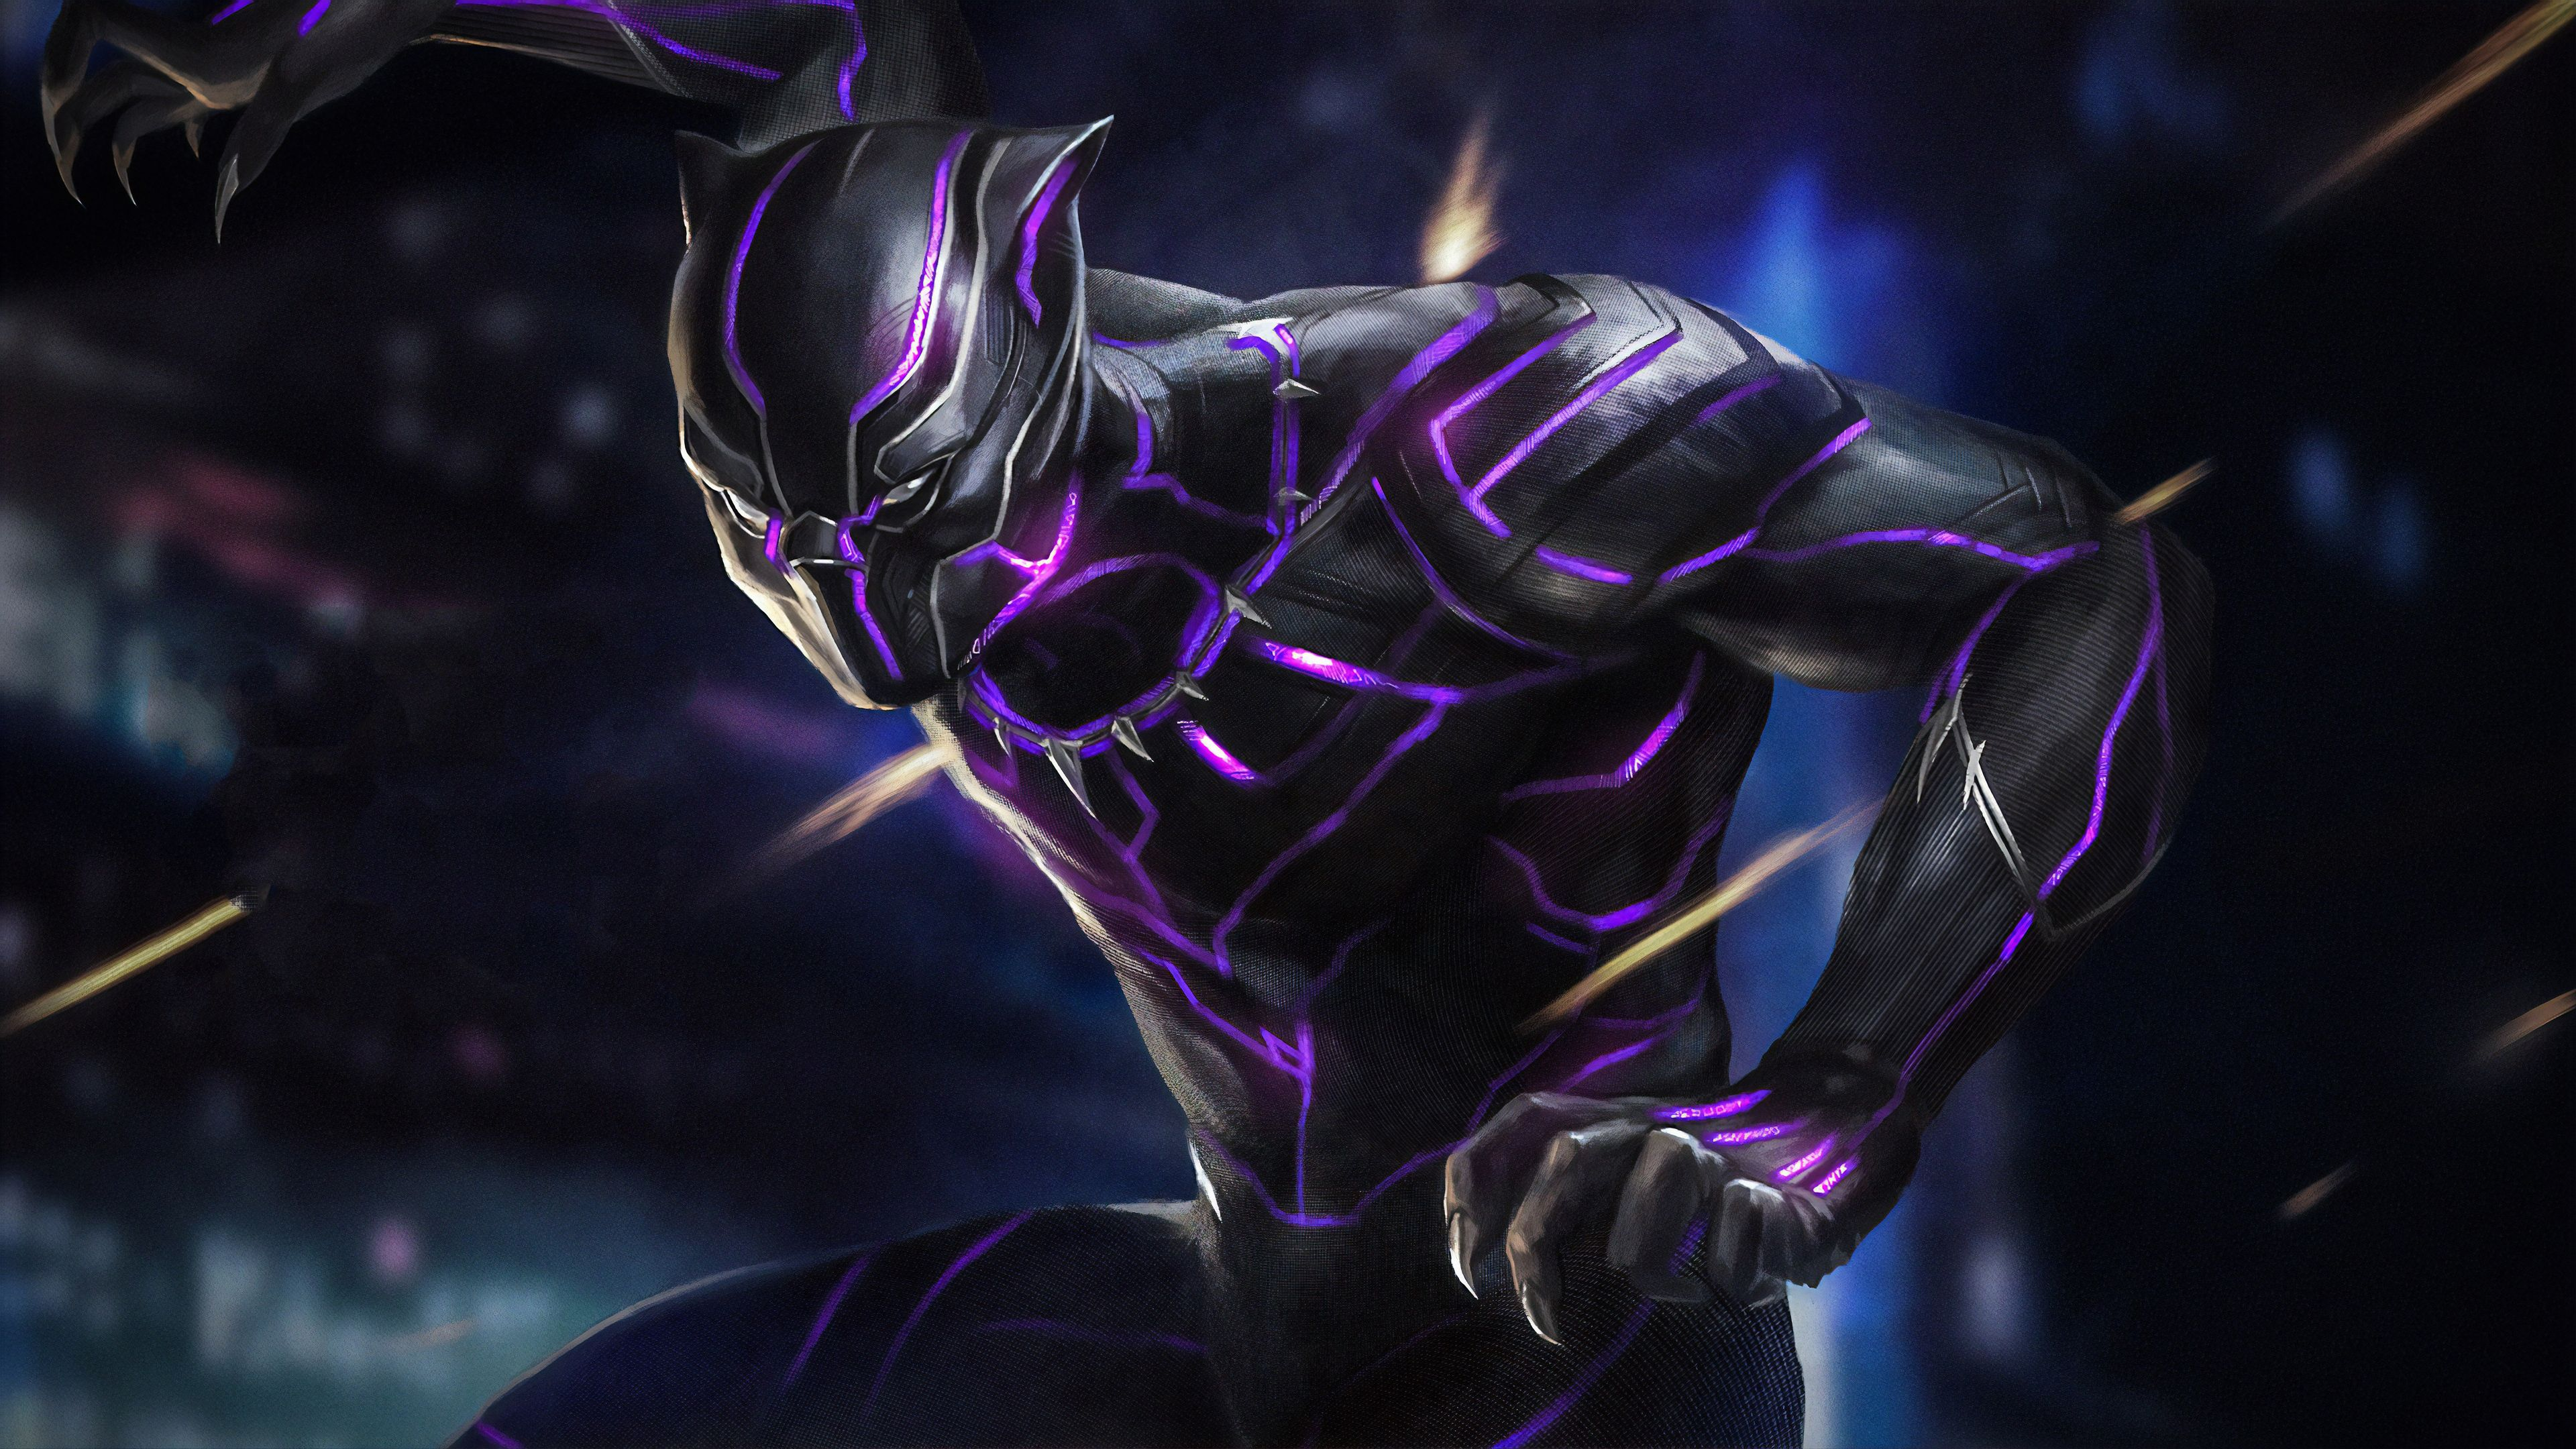 Black Panther New Superheroes Wallpapers Hd Wallpapers Black Panther Wallpapers Artwork Wallpaper Black Panther Hd Wallpaper Black Panther Art Black Panther Hd wallpaper of black panther for pc